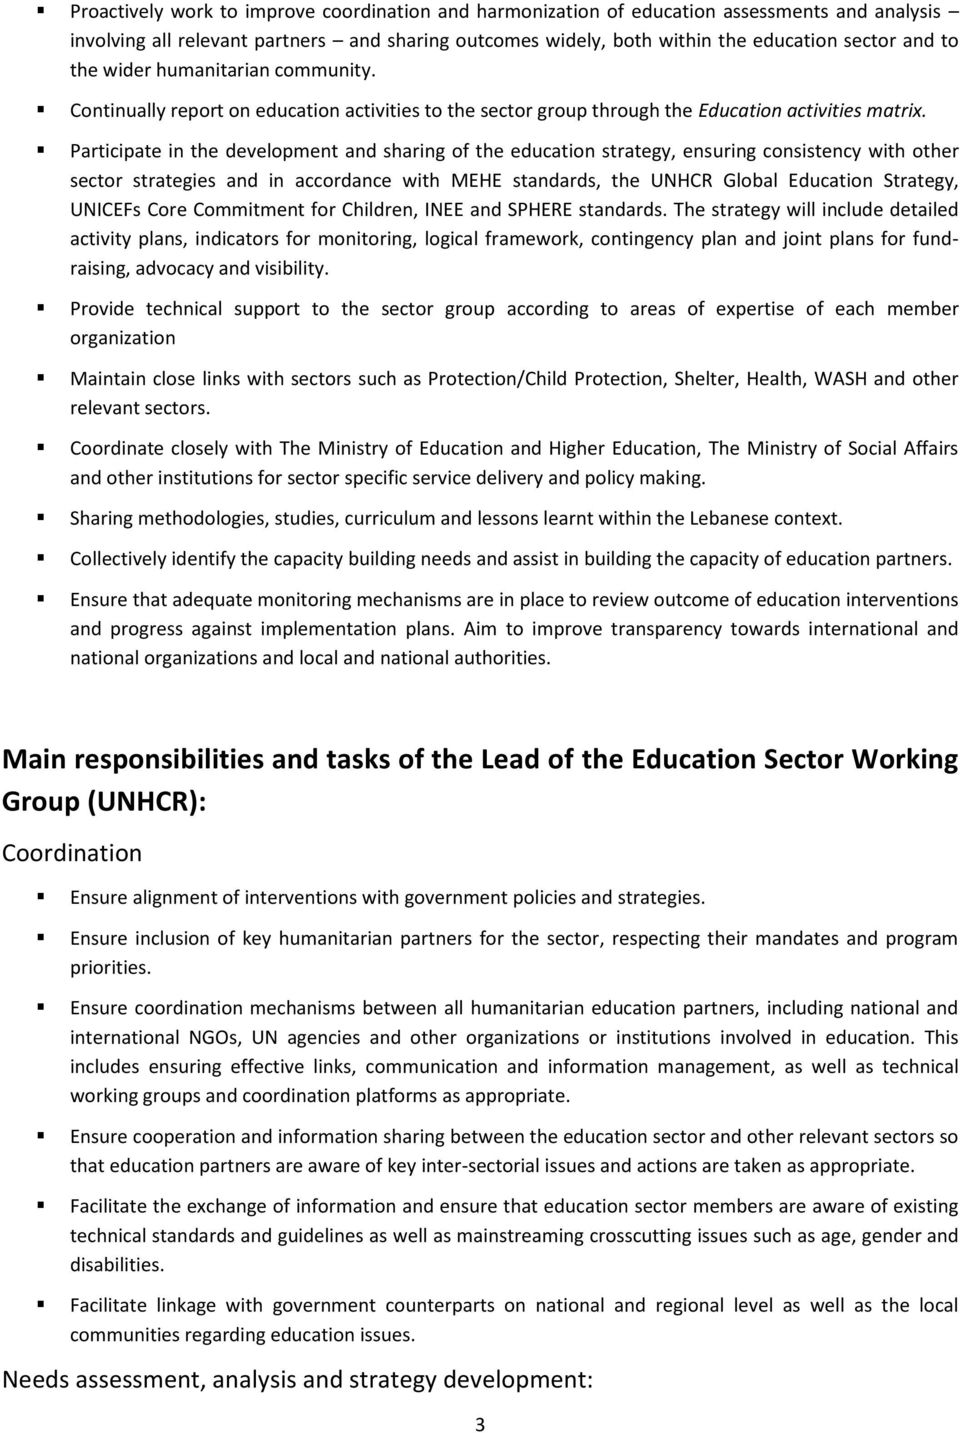 Participate in the development and sharing of the education strategy, ensuring consistency with other sector strategies and in accordance with MEHE standards, the UNHCR Global Education Strategy,